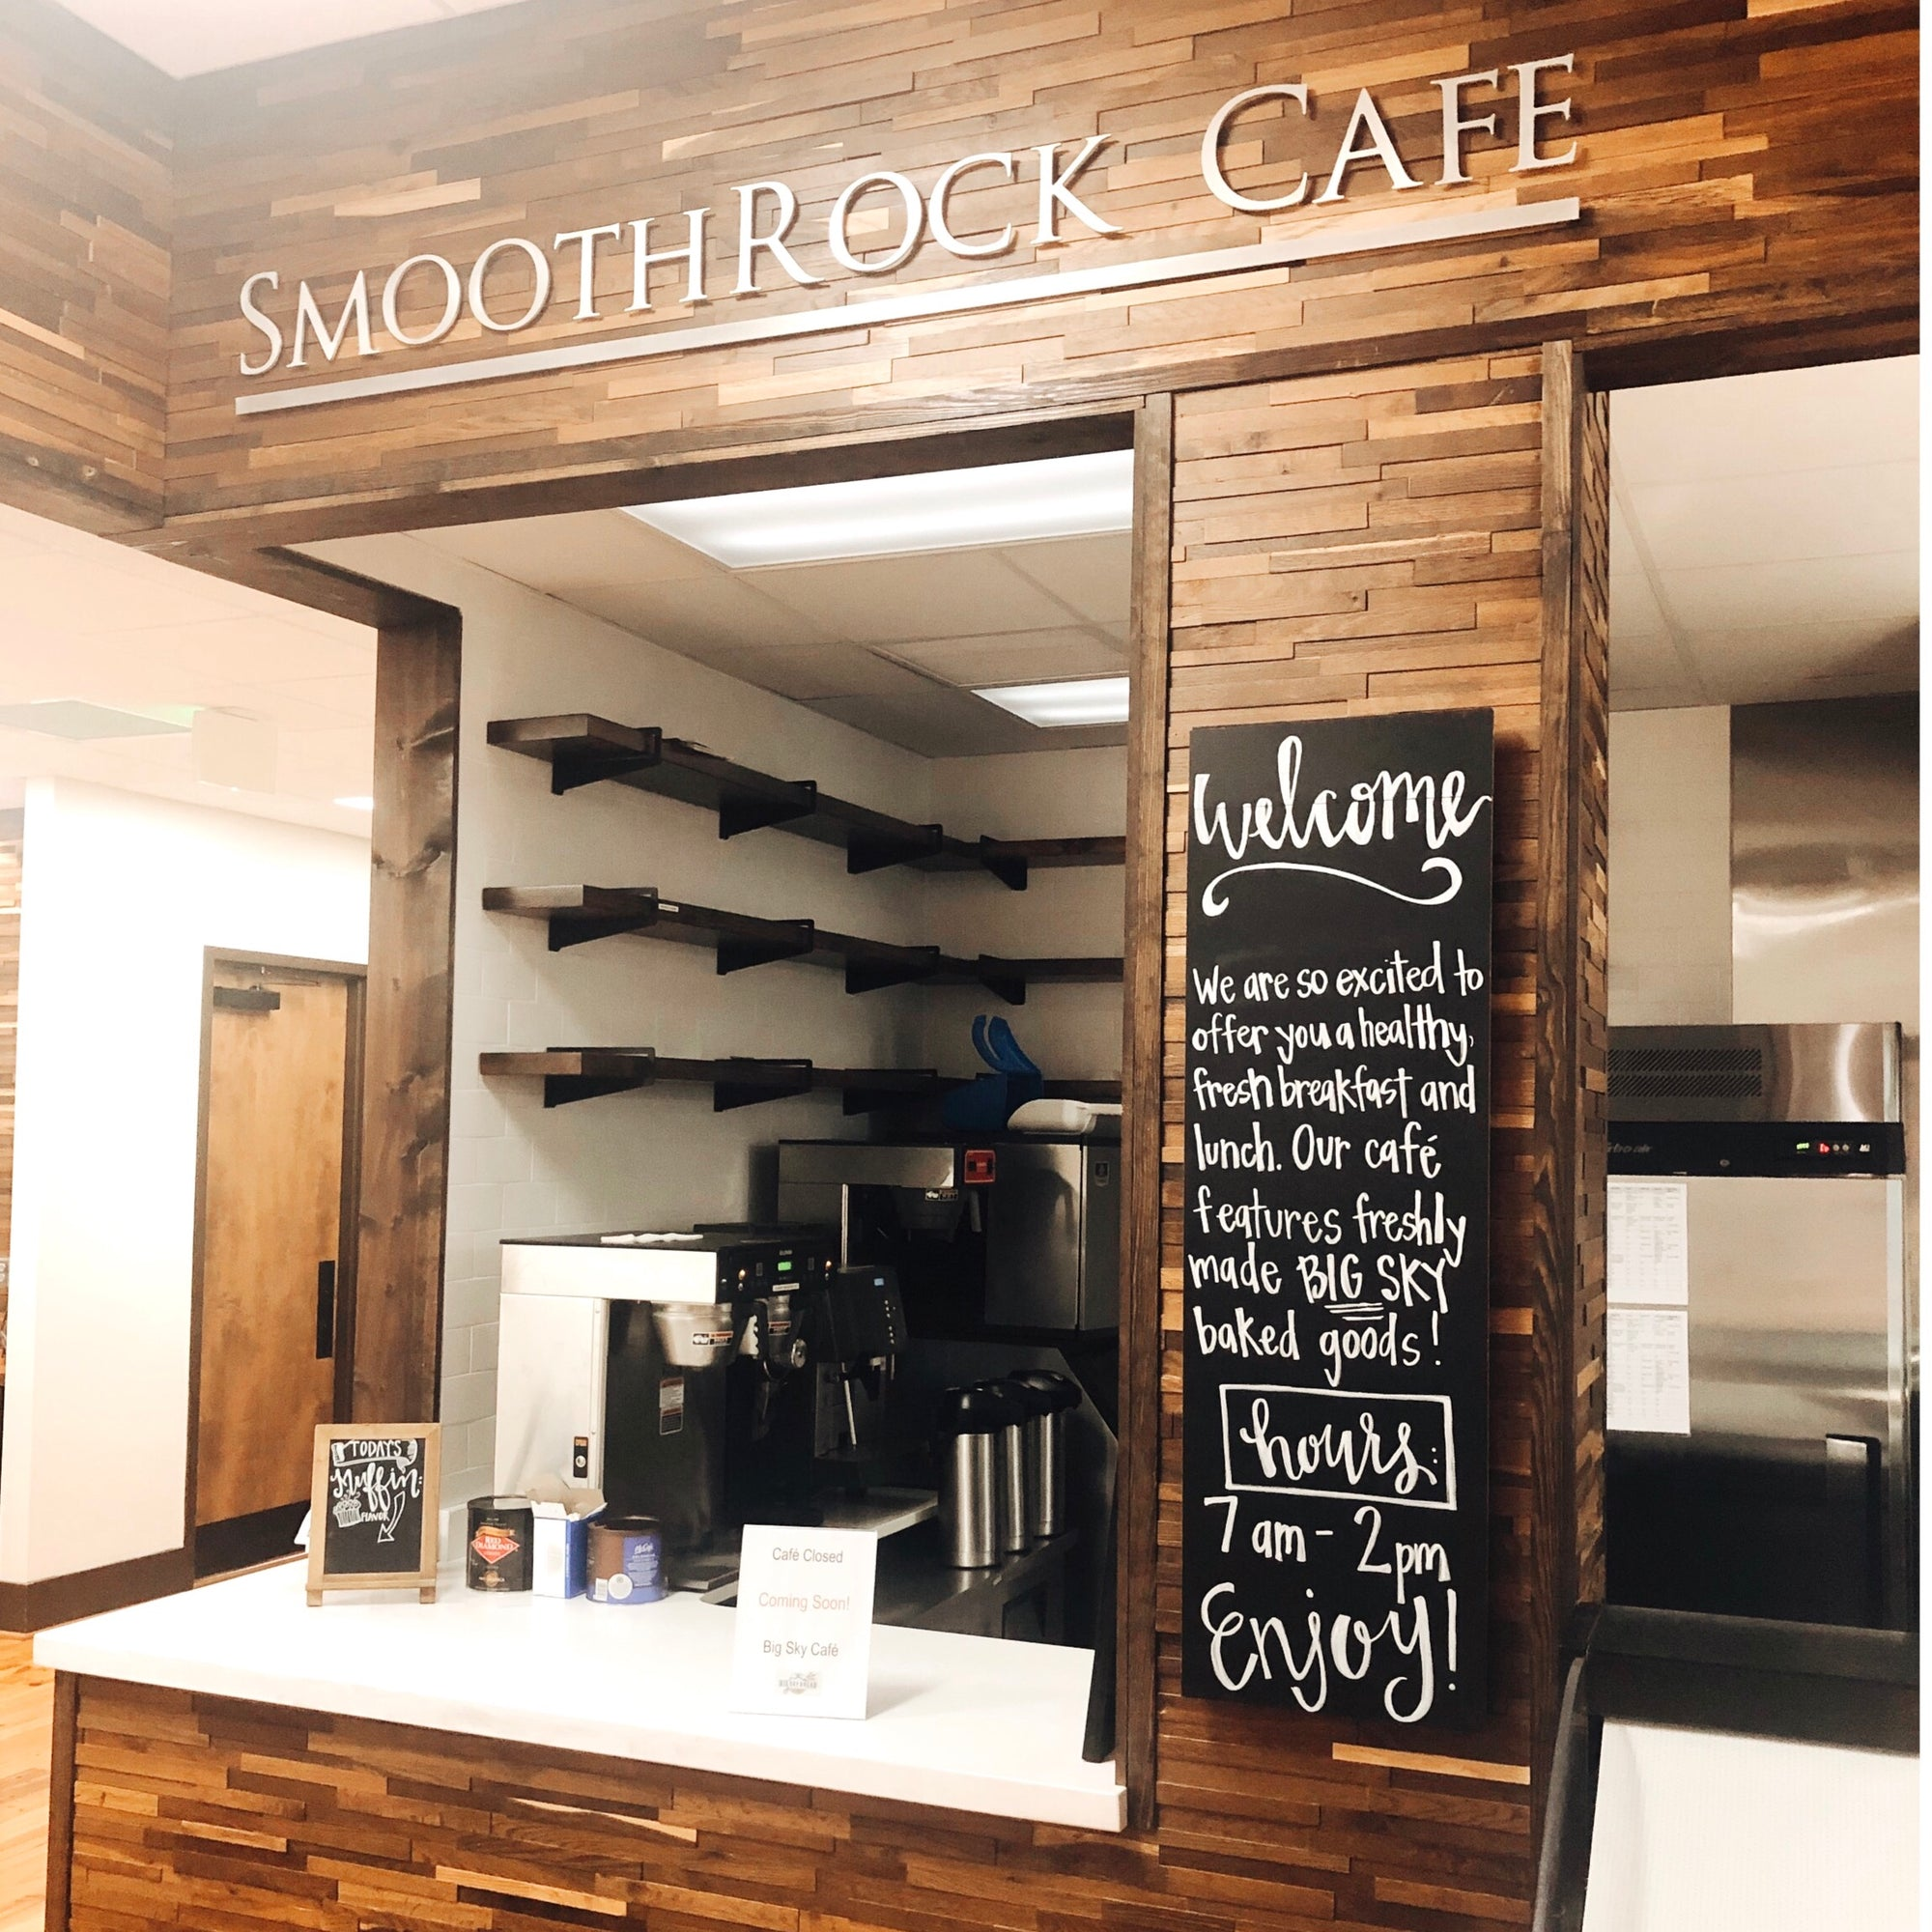 "We have some exciting news - Big Sky is opening a cafe featuring fresh Big Sky Bread baked goods right next to our bakery in Liberty Park. The restaurant is called ""SmoothRock Cafe"" and will operate from 7 am - 2 pm Monday through Friday."